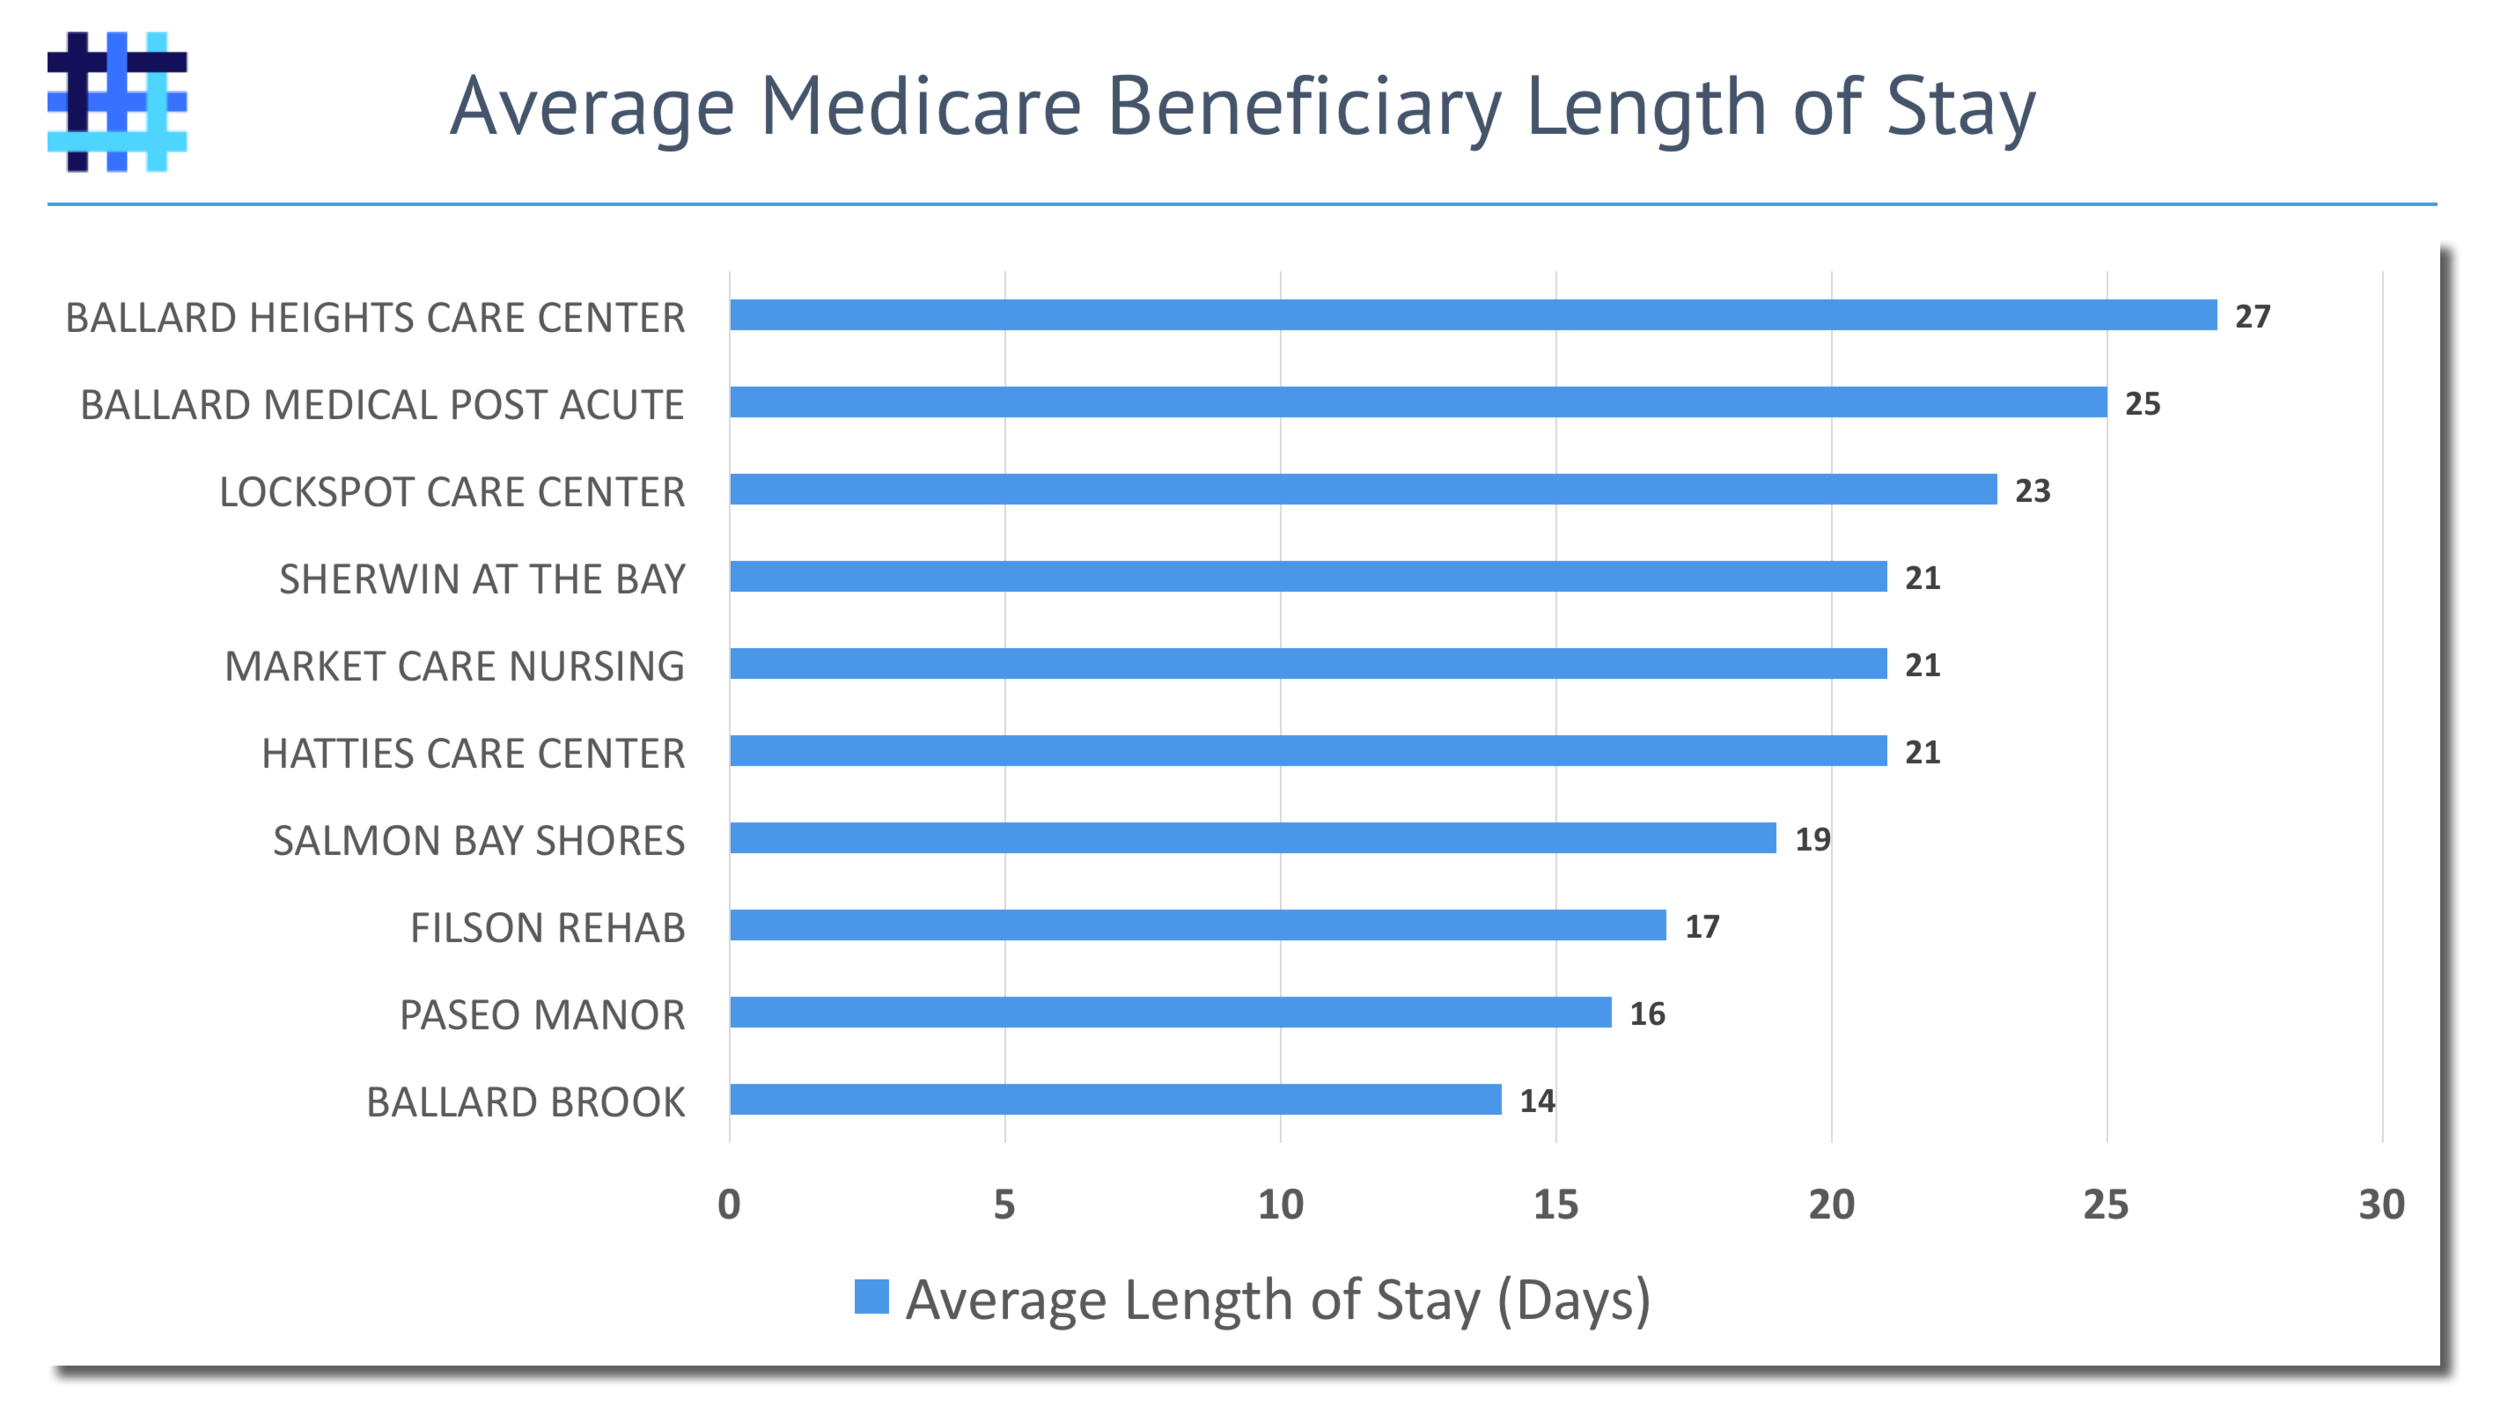 Hospital to Nursing Home Average Length of Stay by SNF